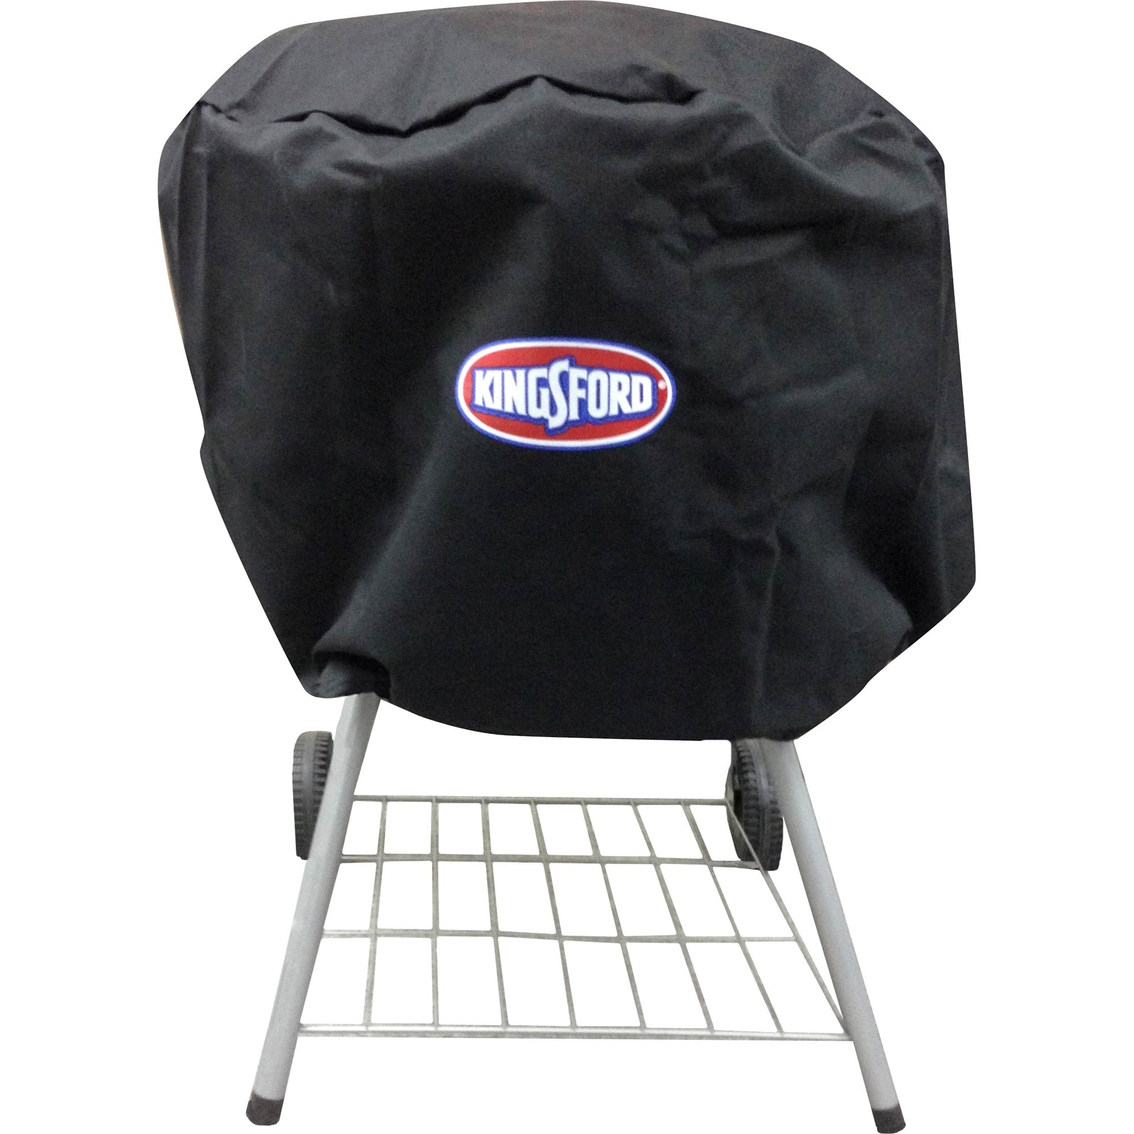 kingsford charcoal case brief essay Discussion questions for case kingsford charcoal 1 describe the main challenges faced by brand managers marcilie smith boyle and allison warren of what.